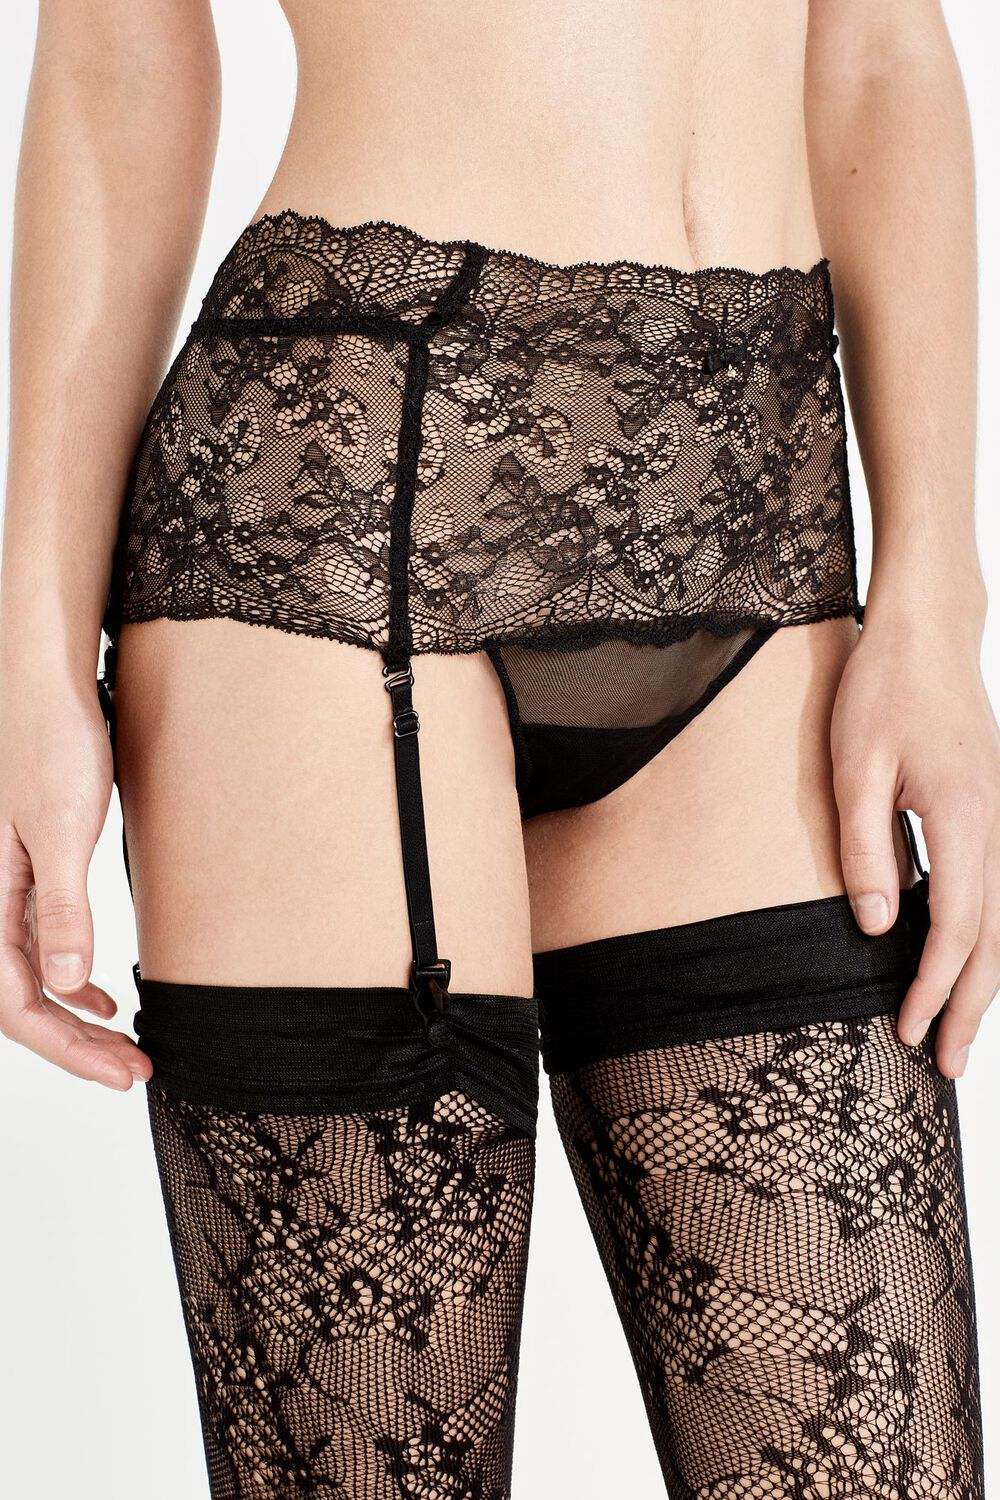 6584c23839 High waisted panties with suspender belt